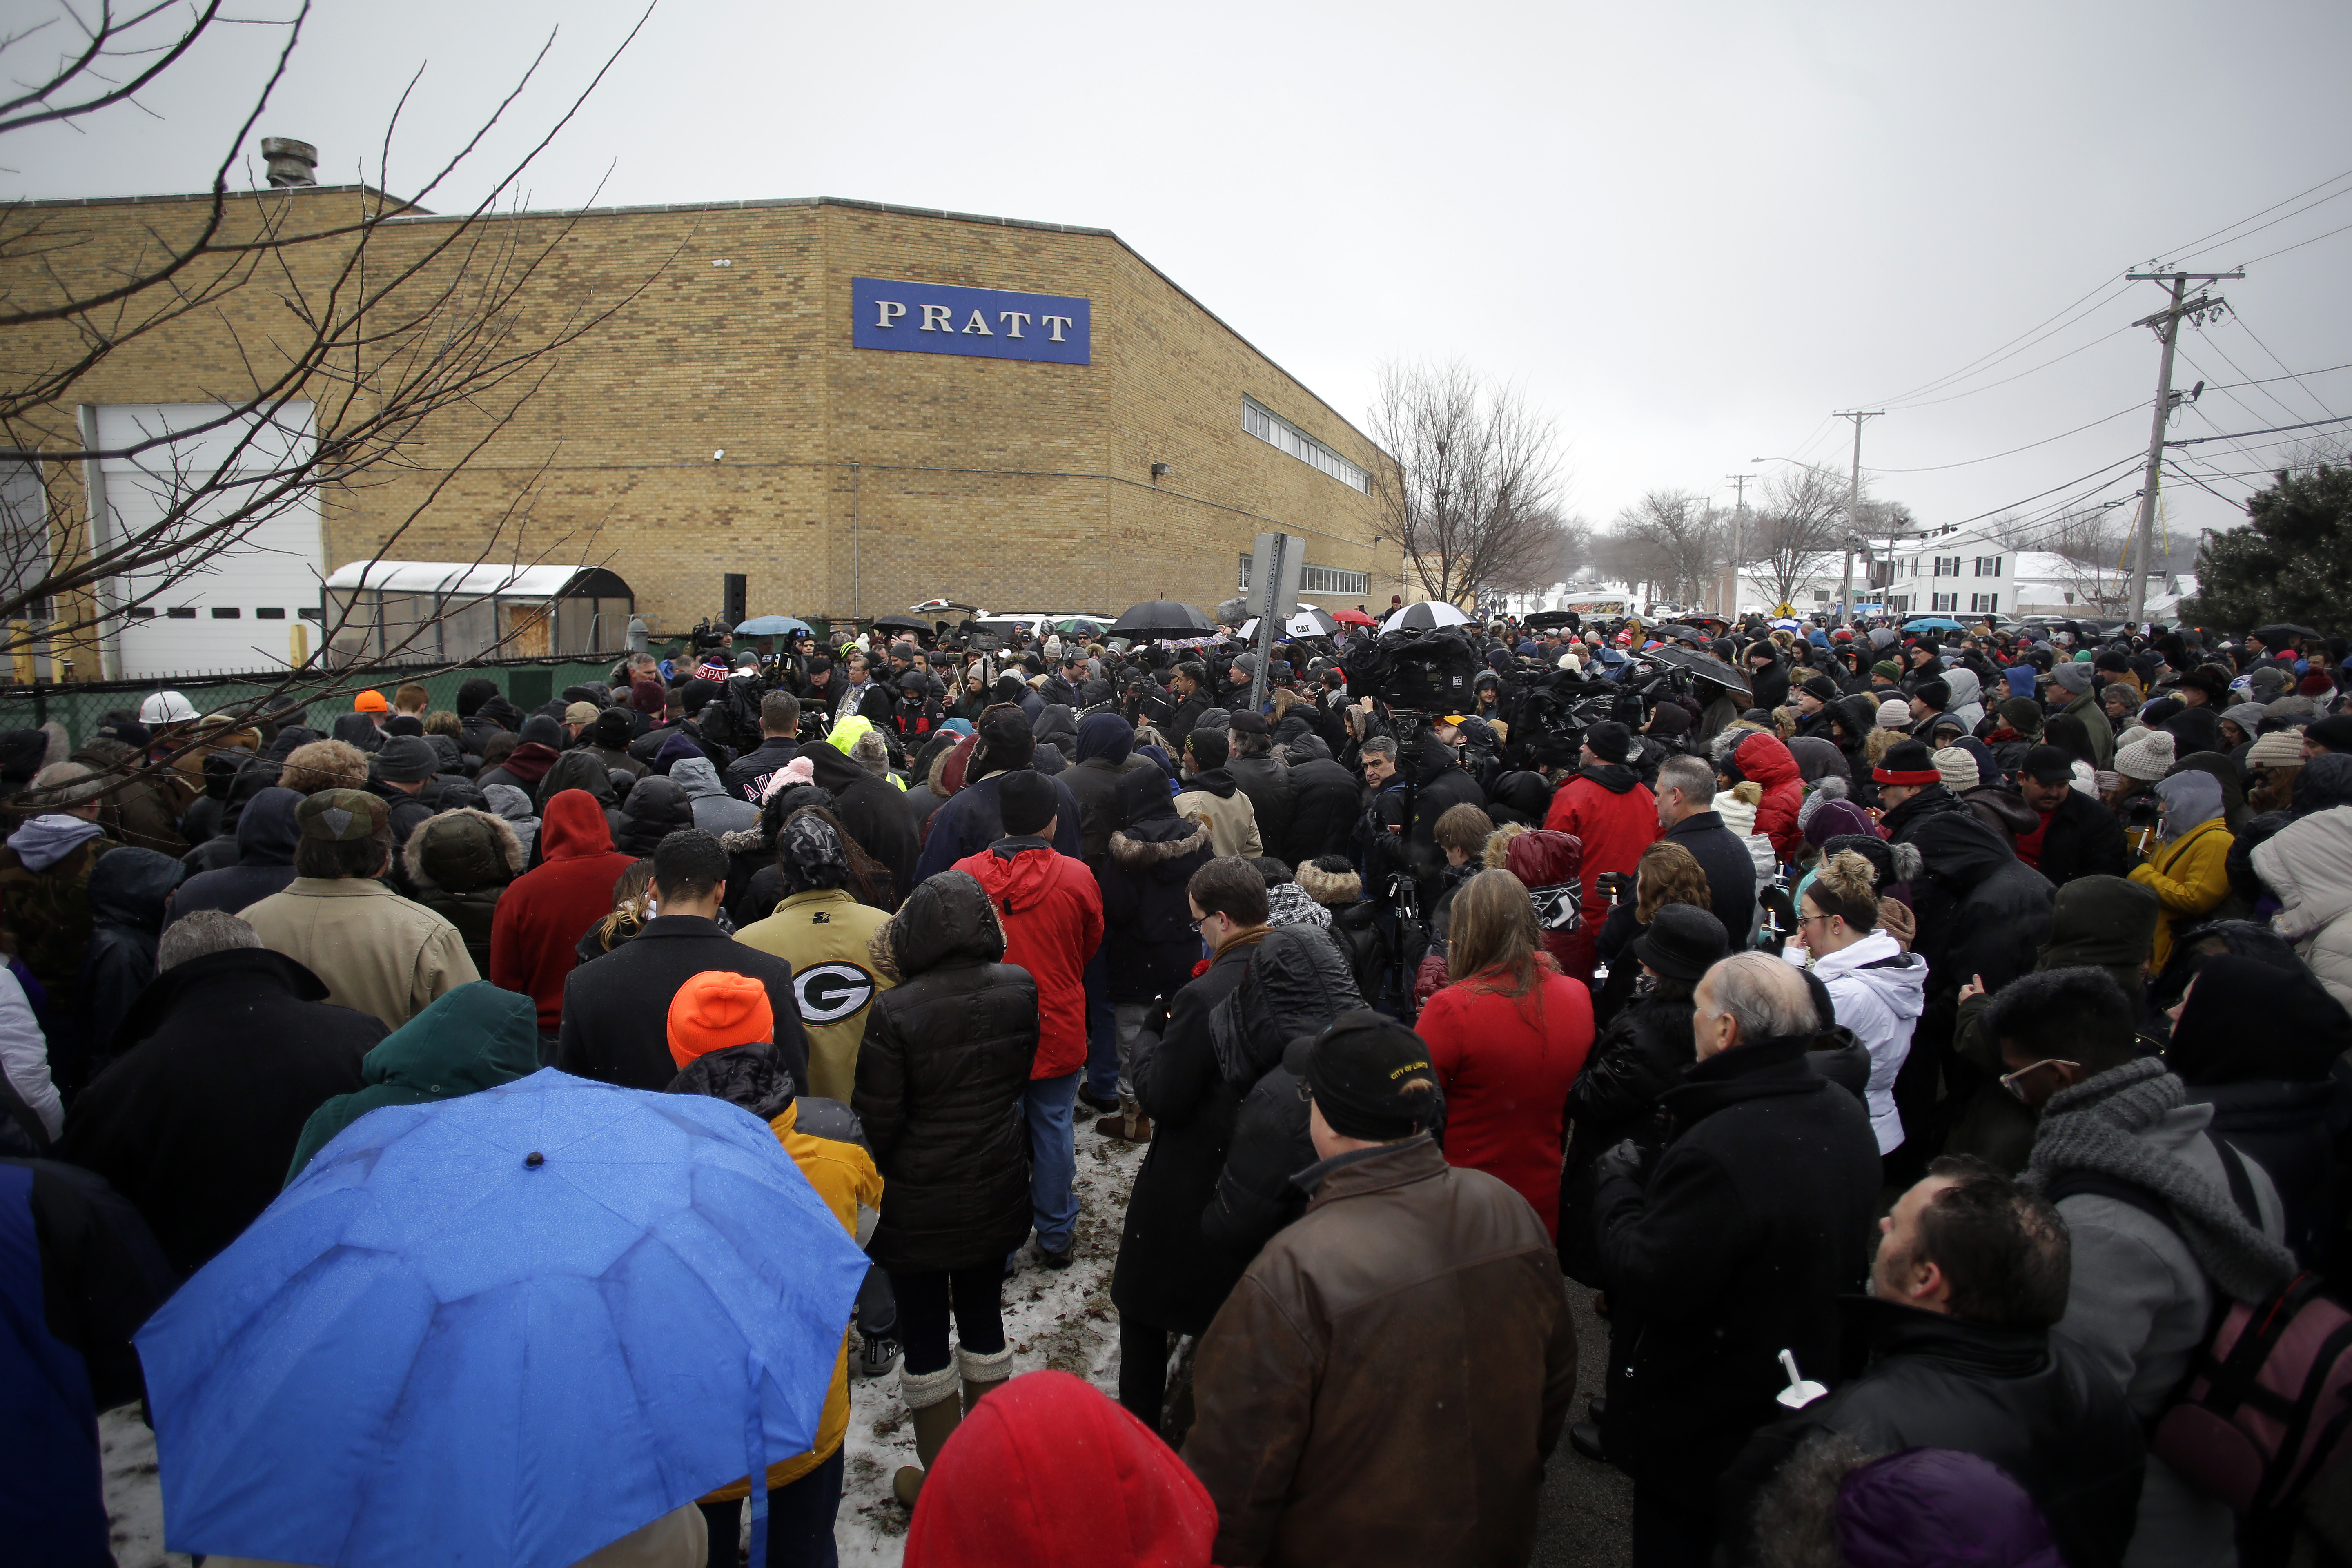 Prayer Vigil Held At Site Of Workplace Shooting In Aurora, IL That Killed  5